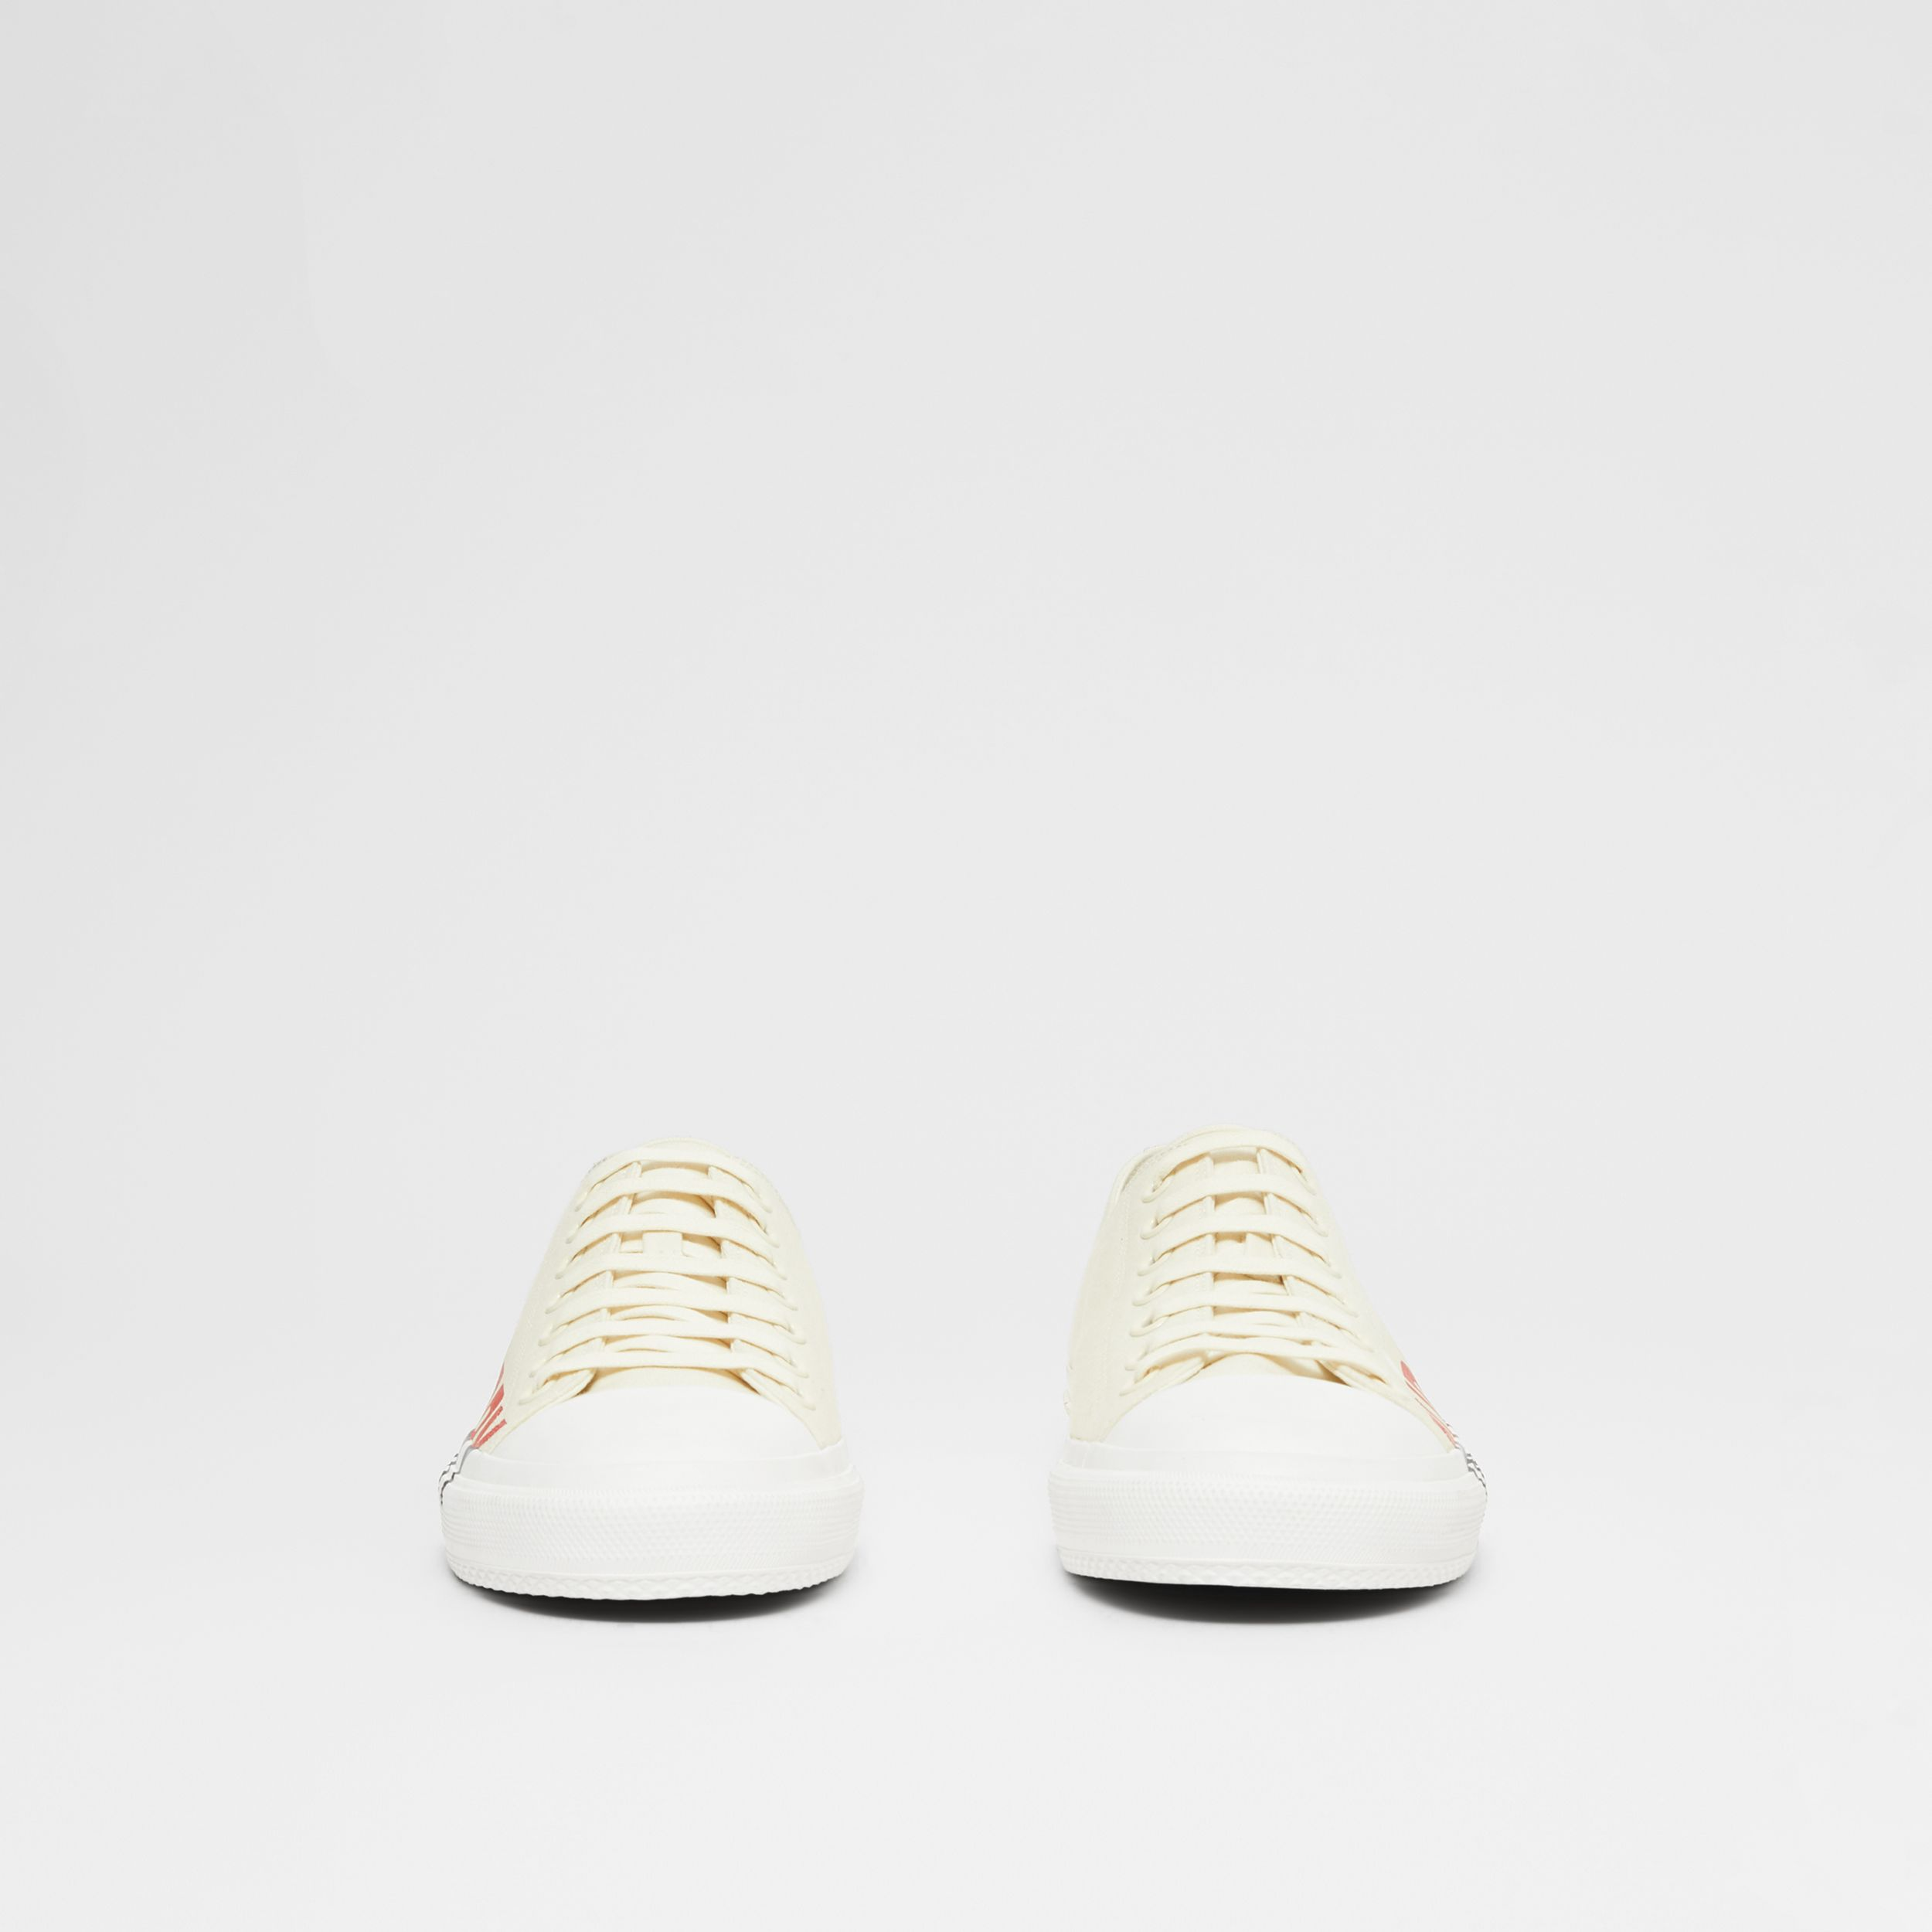 Logo Print Tri-tone Cotton Canvas Sneakers in Cream - Men | Burberry - 4